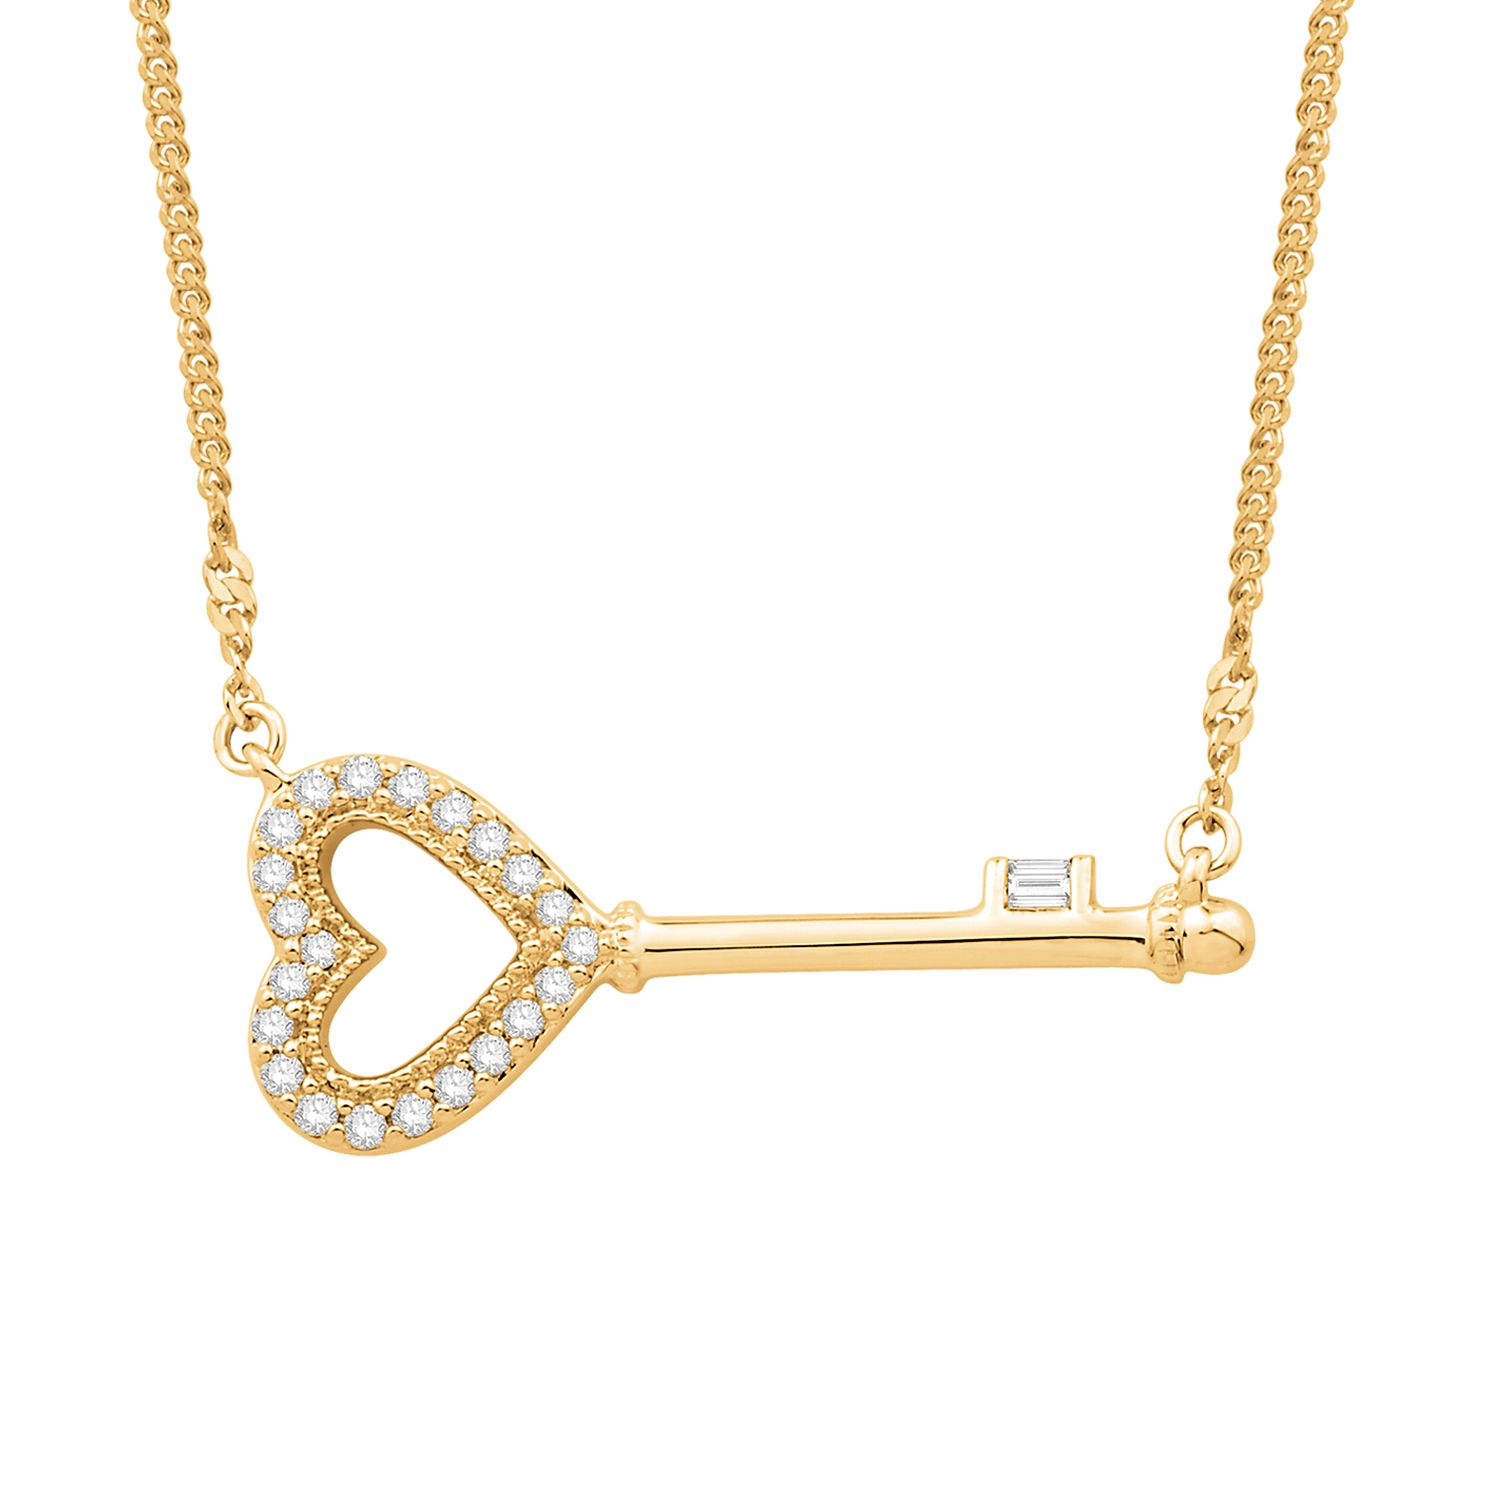 Emmy London 9ct Yellow Gold 1/10ct Heart Diamond Key Pendant - Product number 3329631